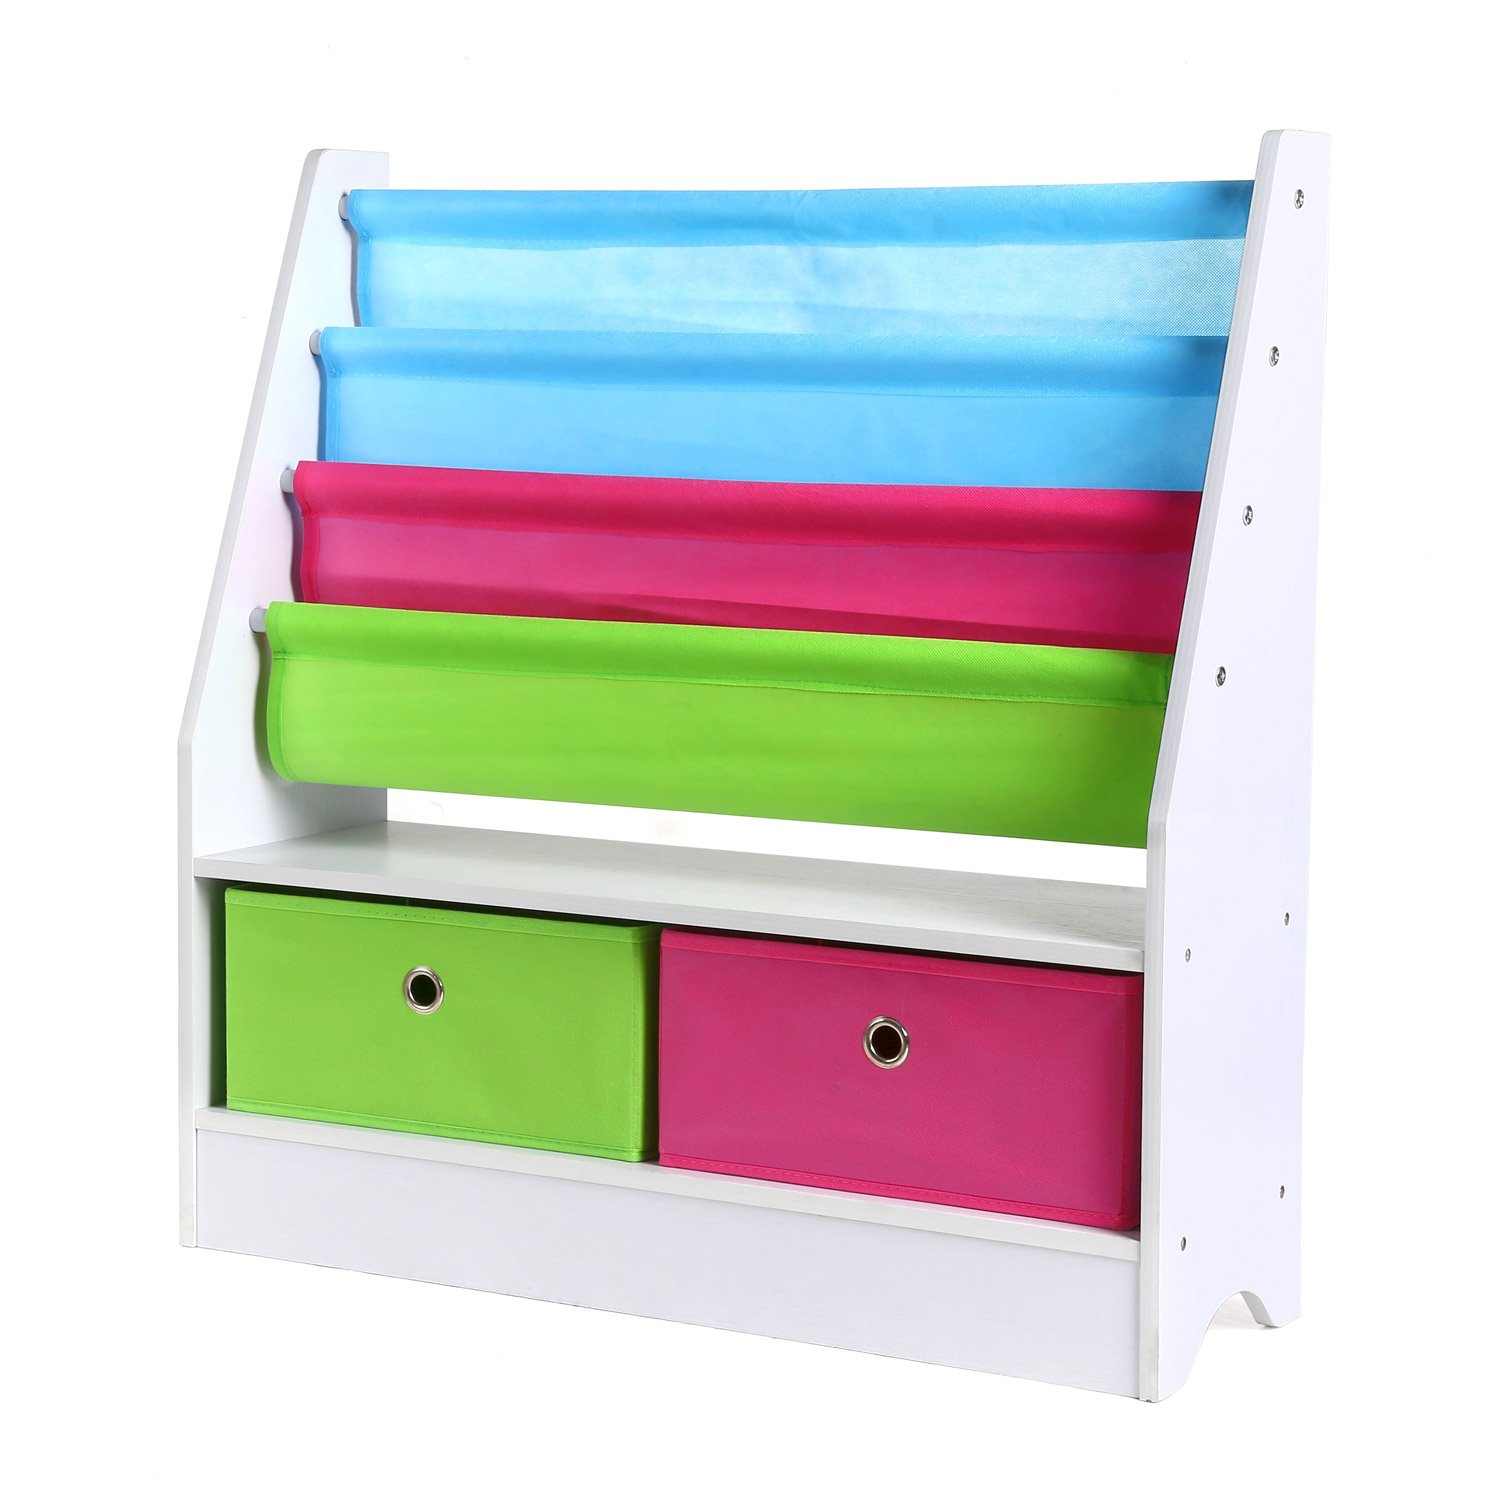 Homfa Kids Toy Storage Bookcase Unit with 3 Tier Bookshelf and 2 Non-Woven Drawers Boxes Multicolor HF